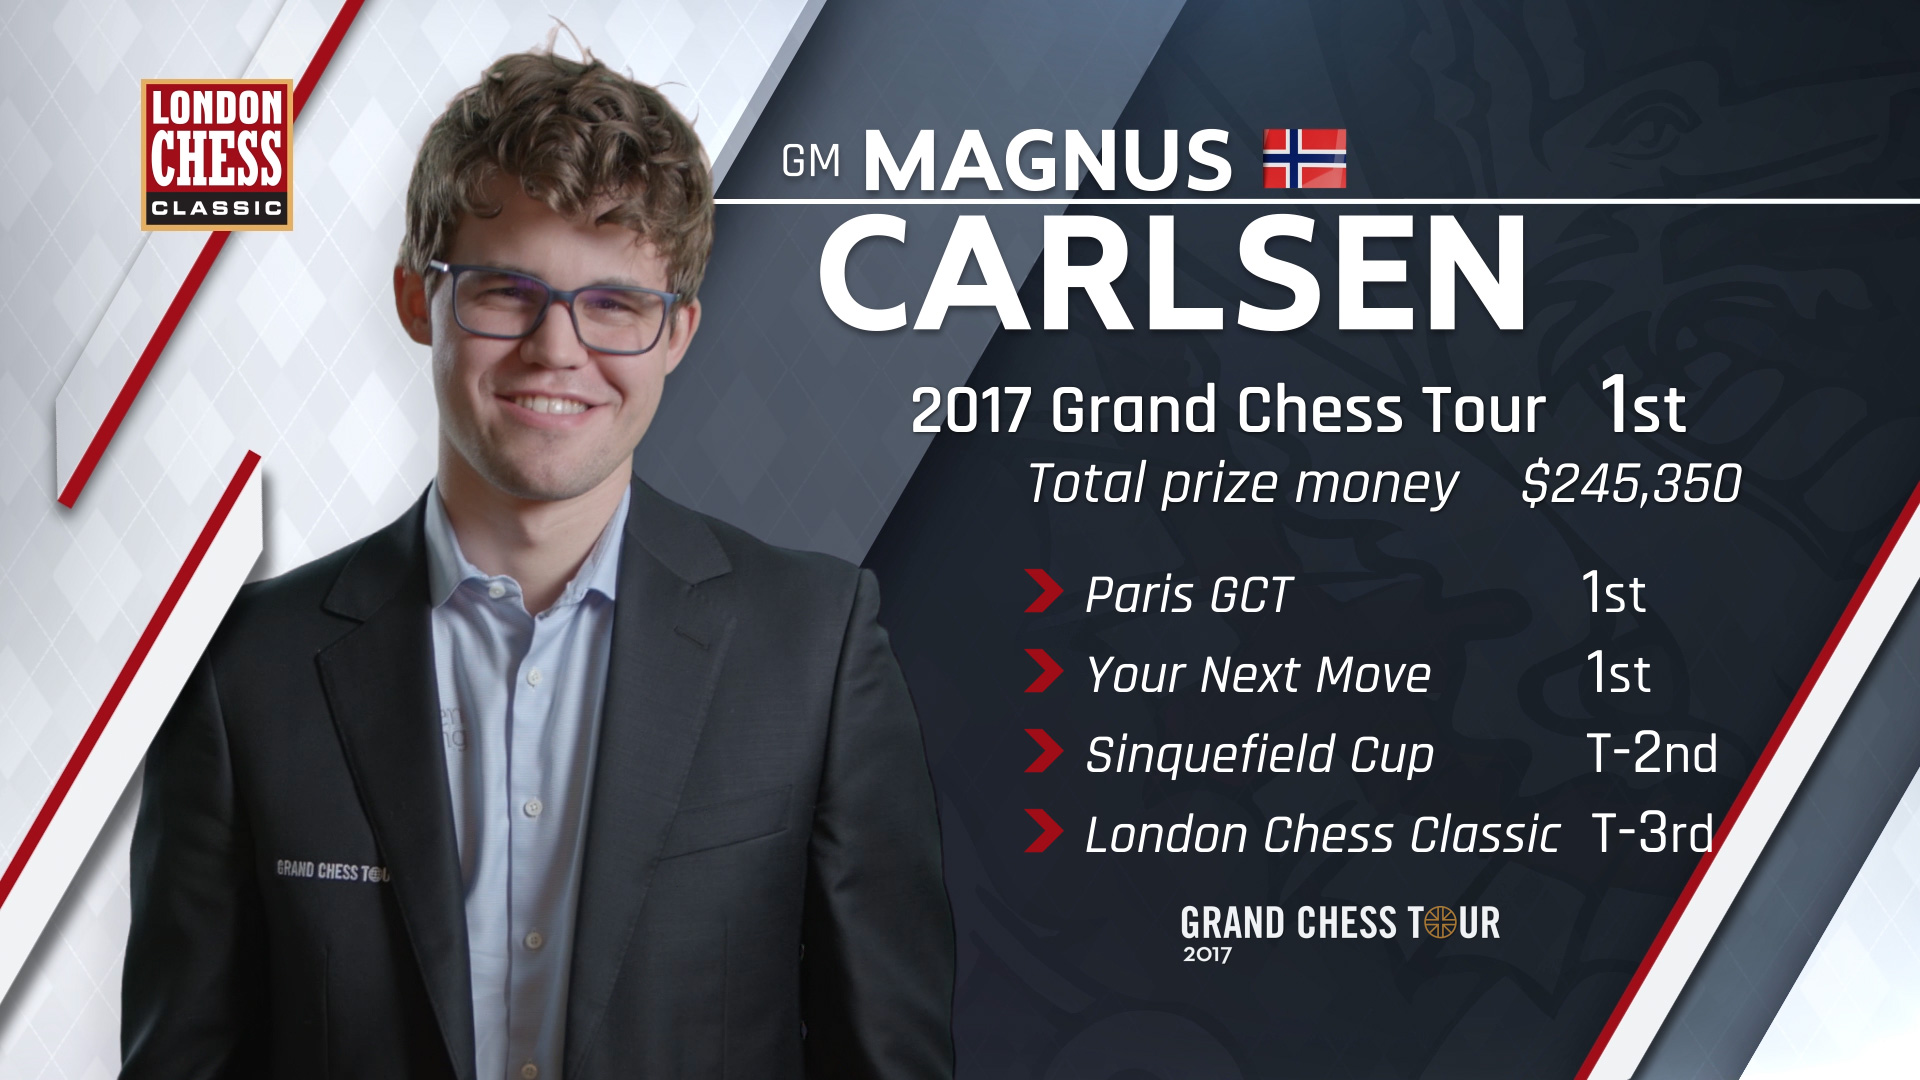 Grand chess tour prizes for adults